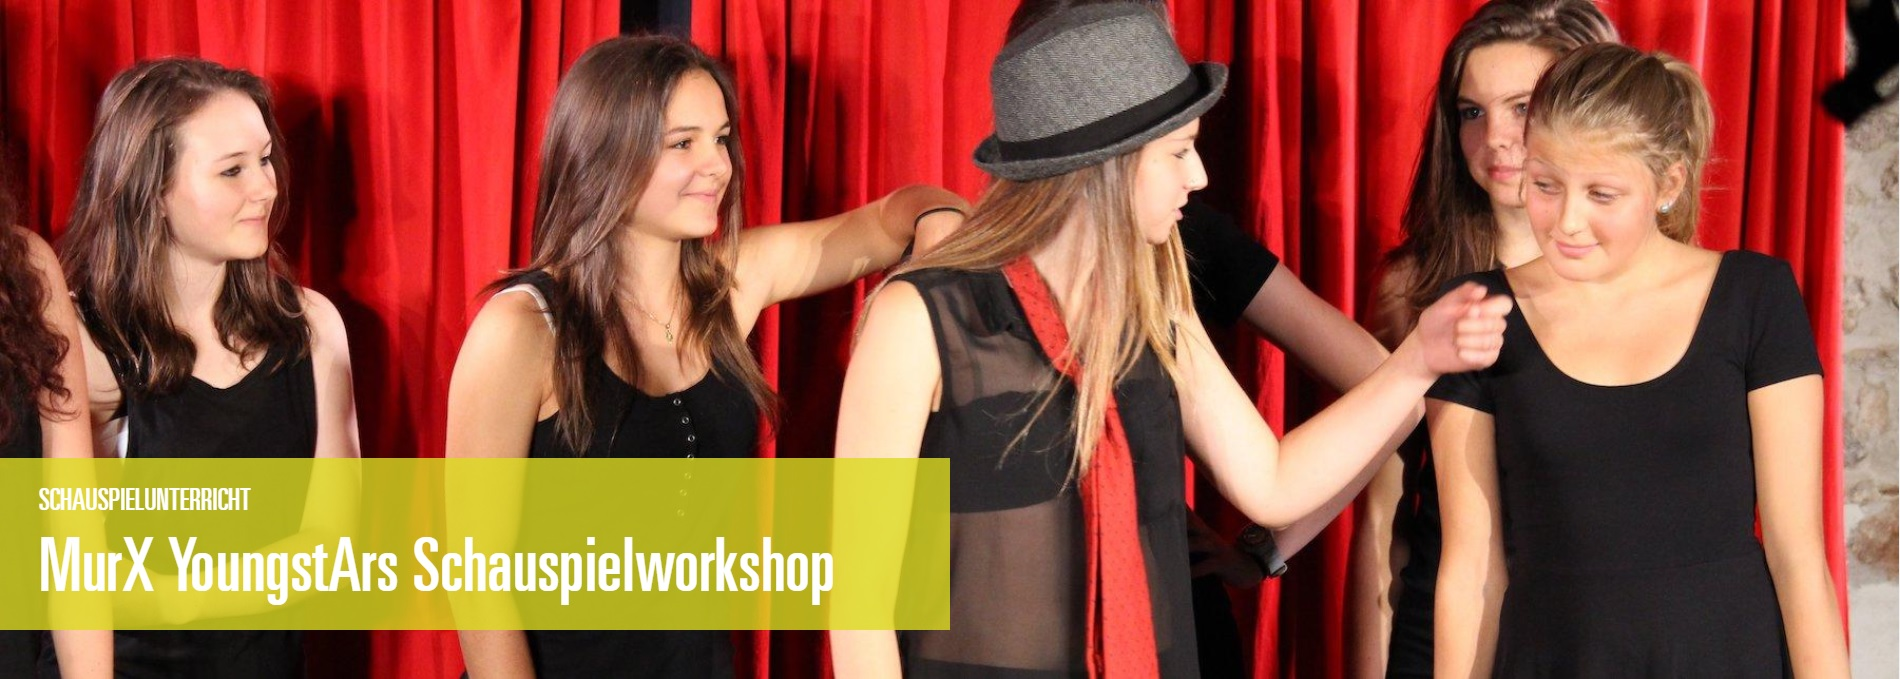 eventbild_murx_youngstars_schauspielworkshop_junior